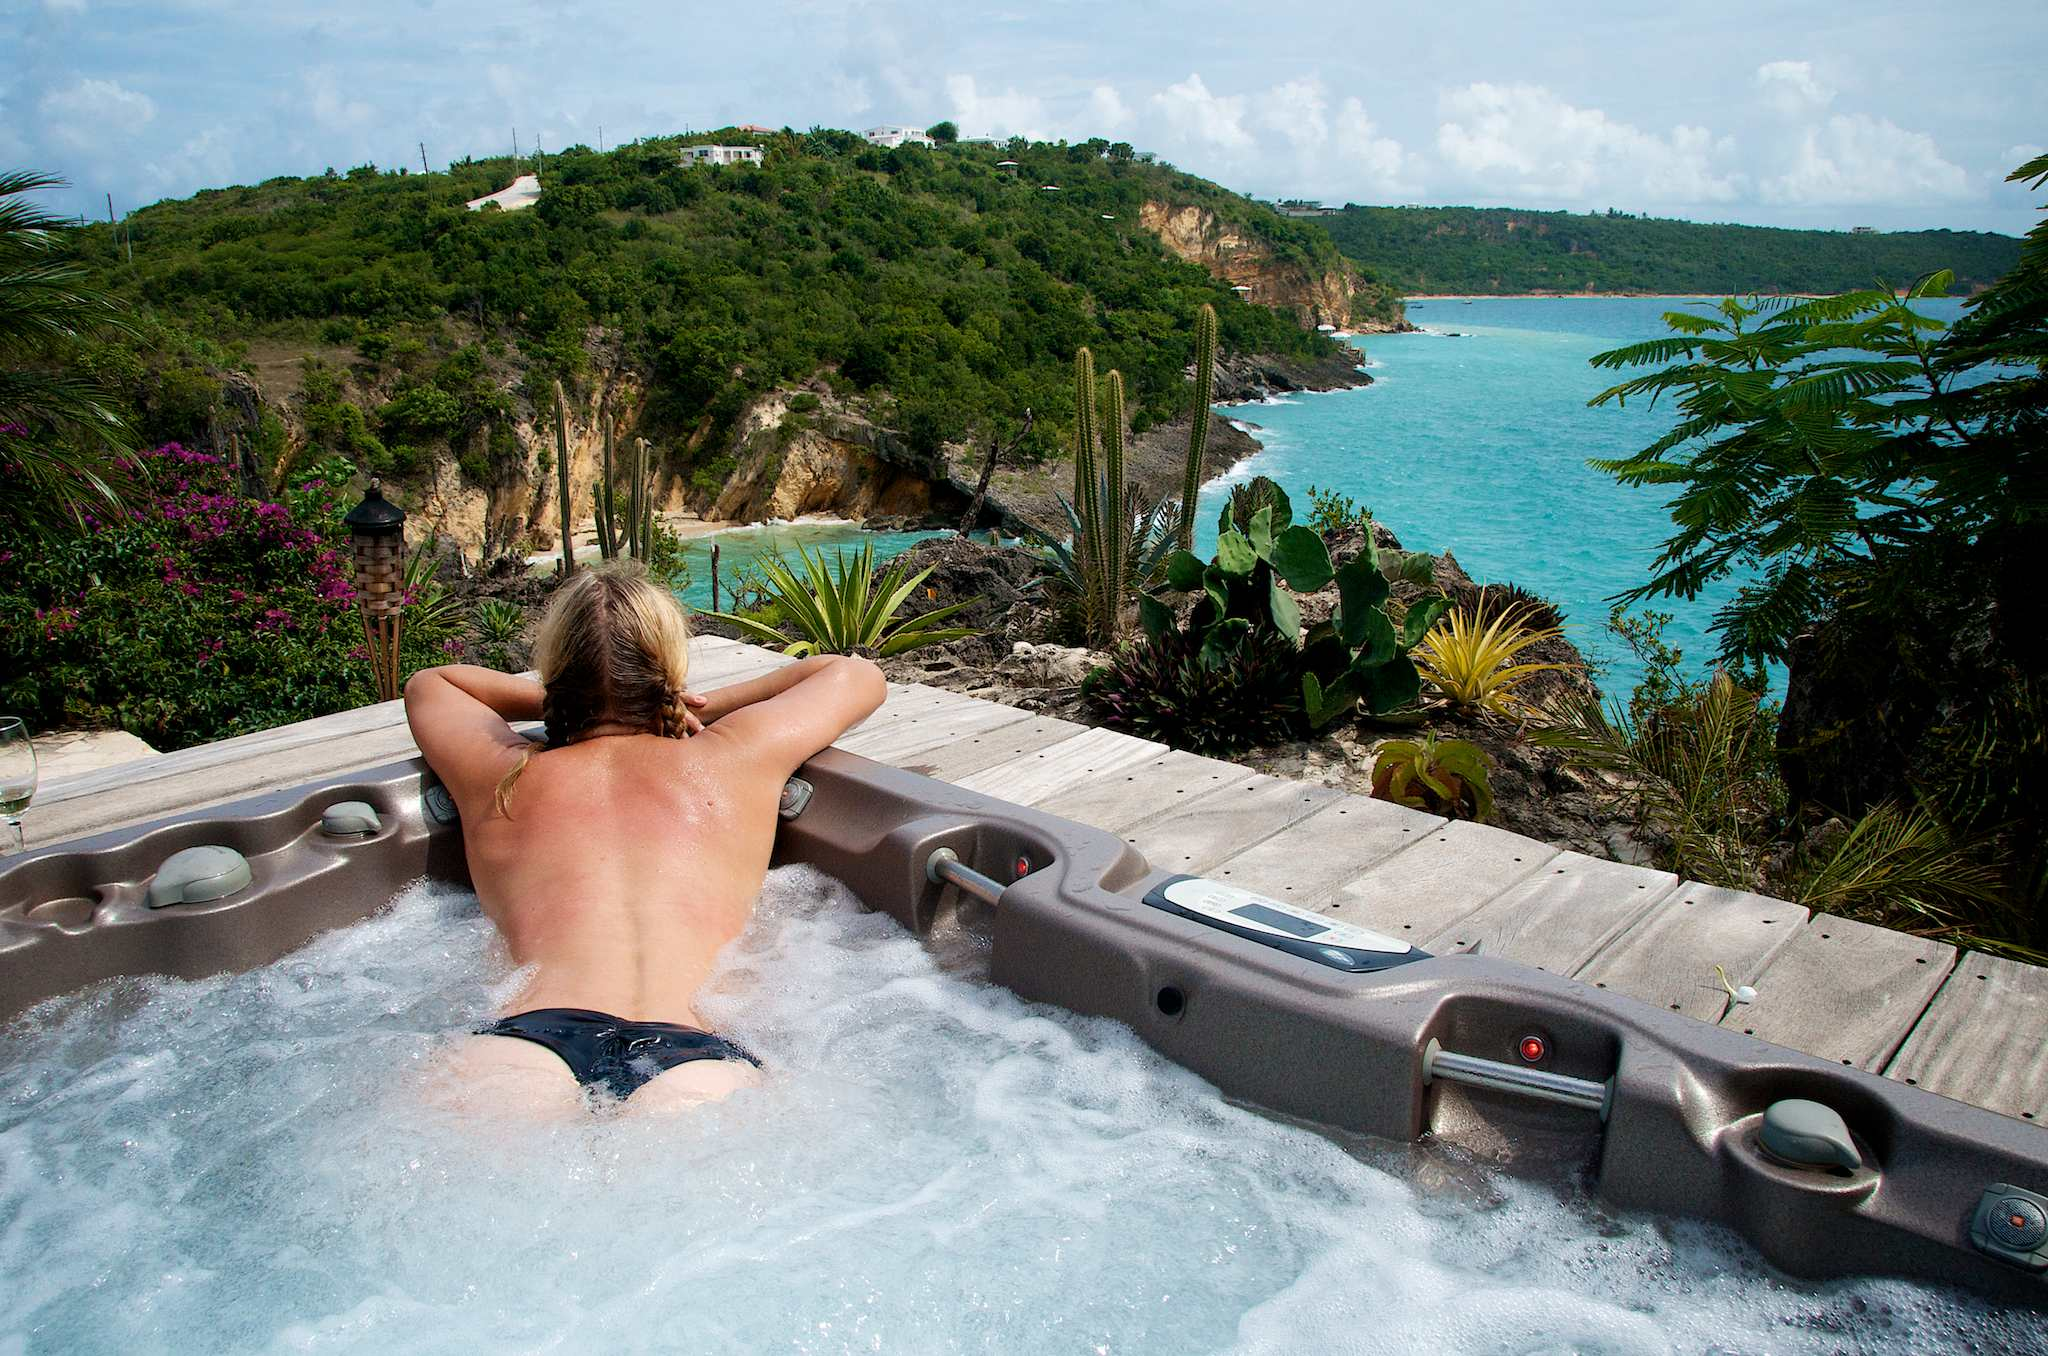 Hot tubbing at Ani Villas, Anguilla by Patrick Bennett